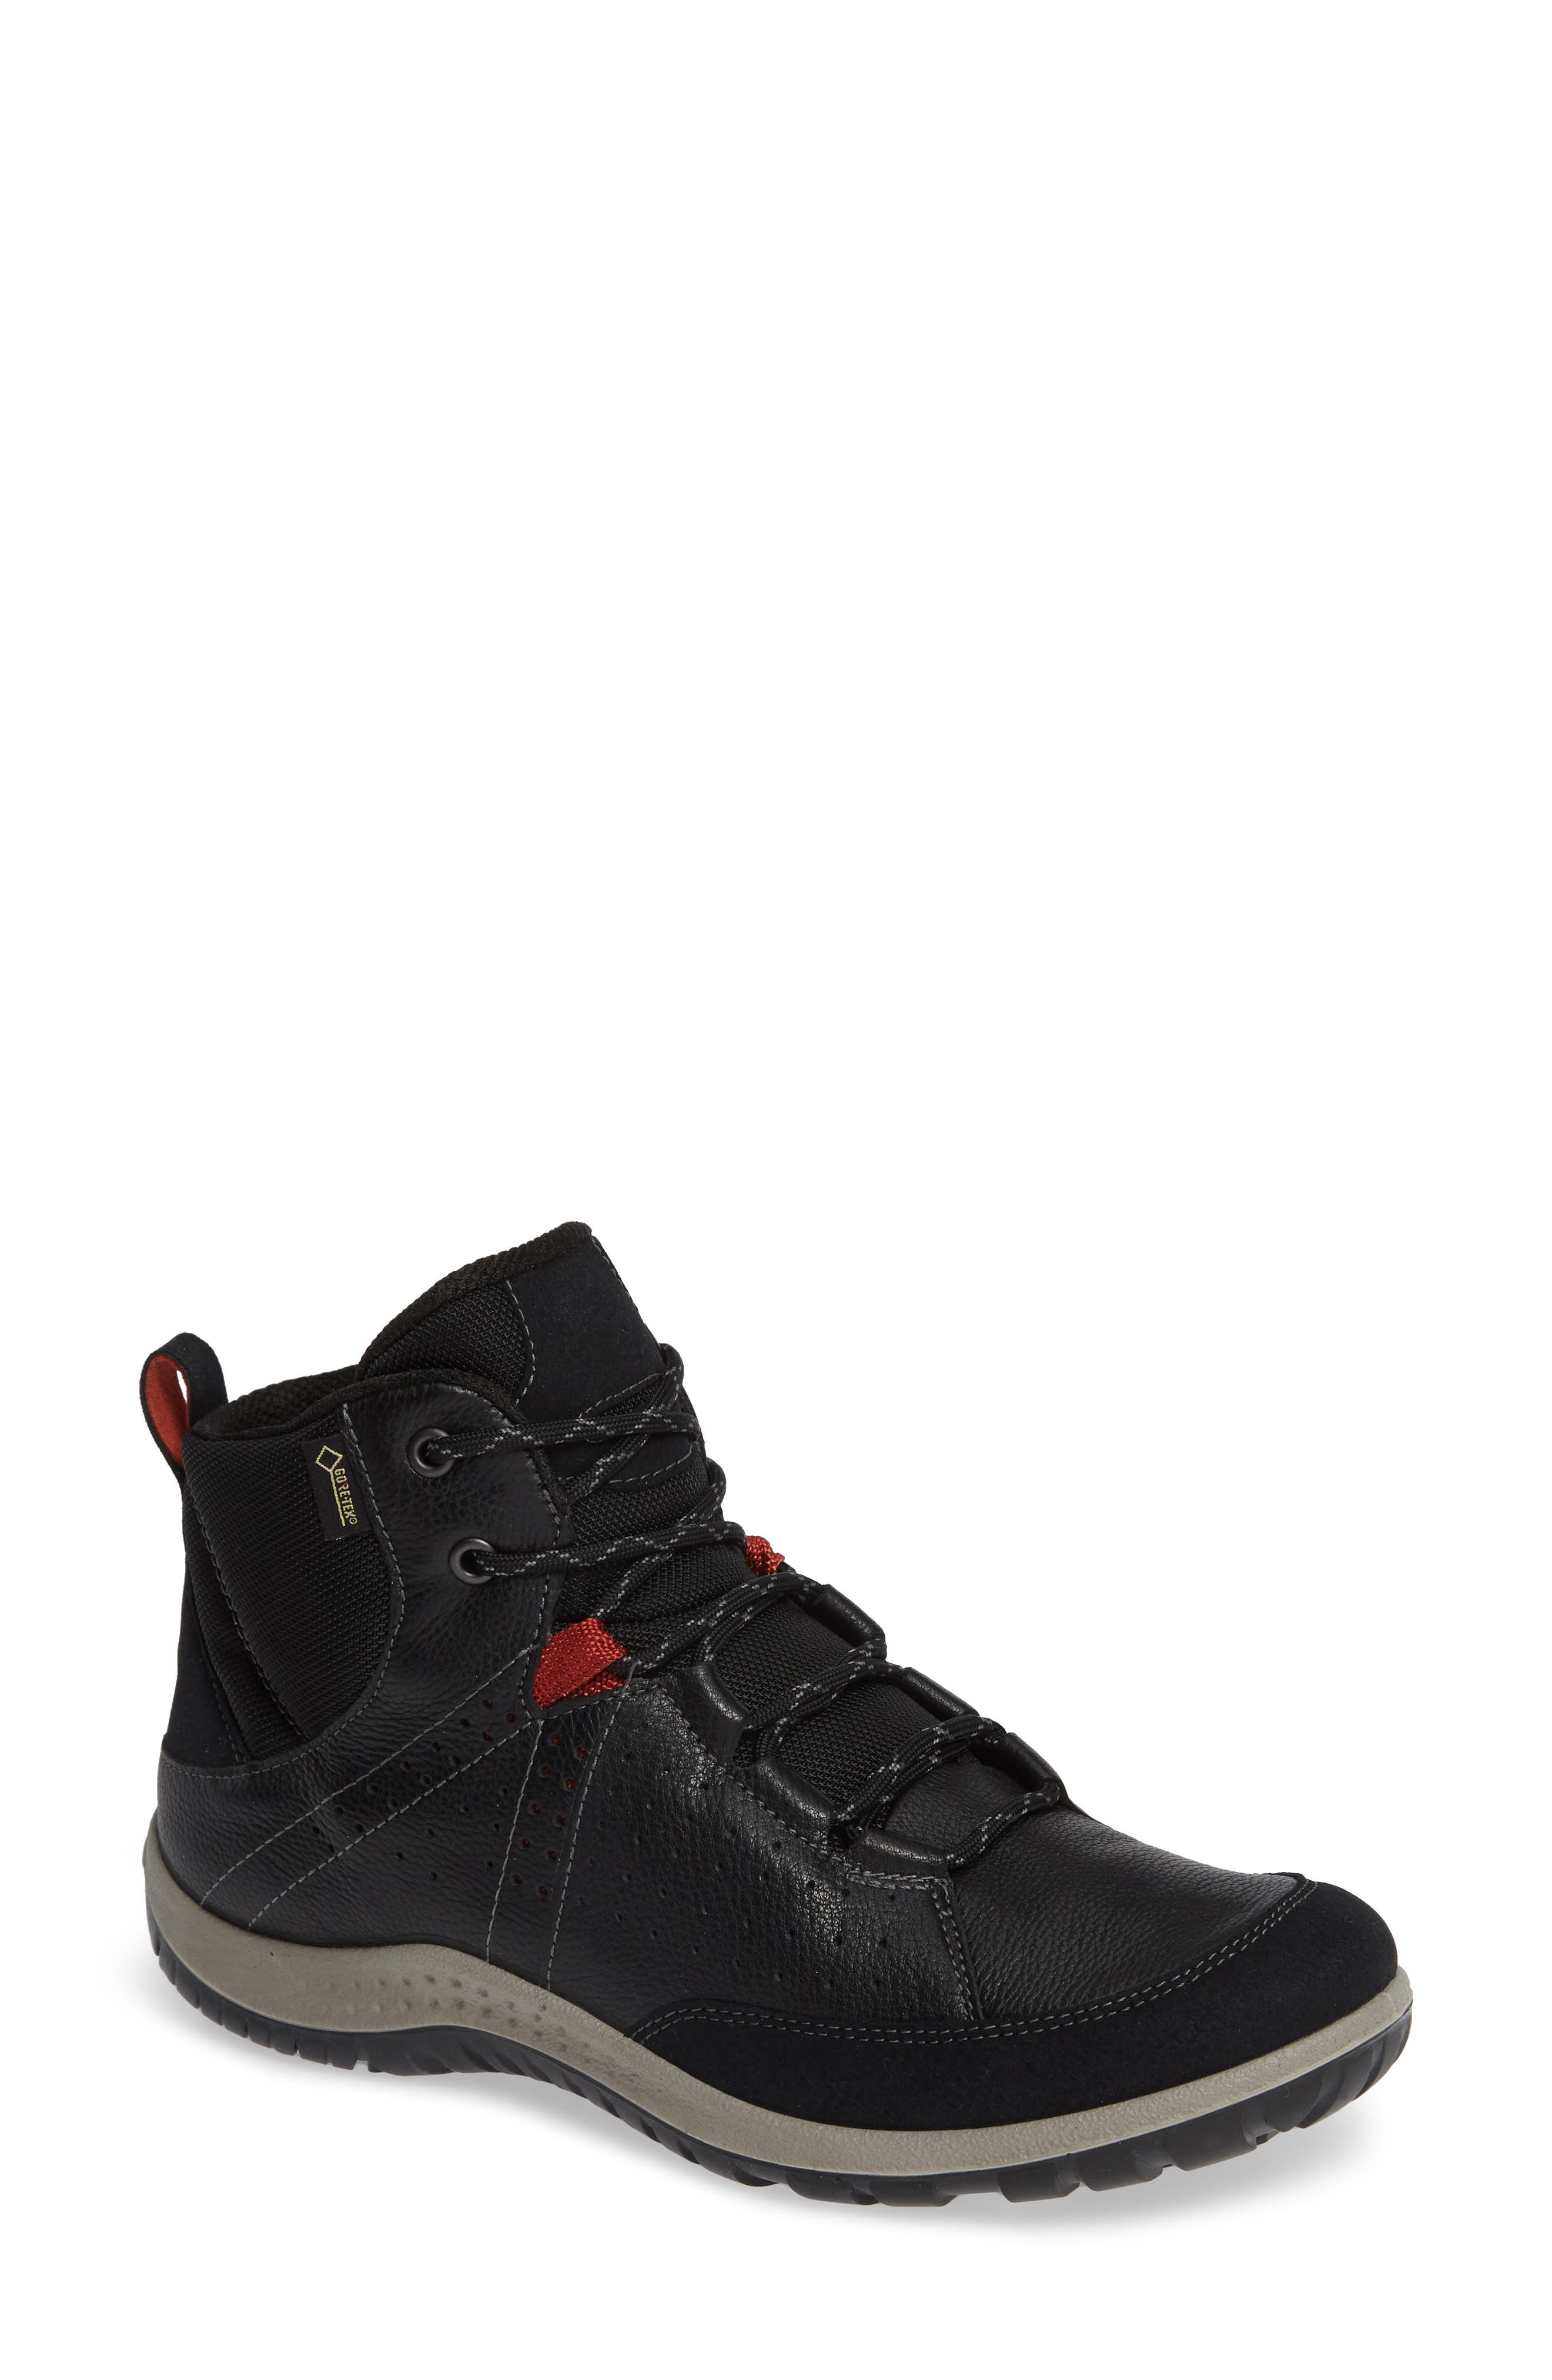 Aspina Gore-Tex<sup>®</sup> Bootie,                             Main thumbnail 1, color,                             BLACK LEATHER